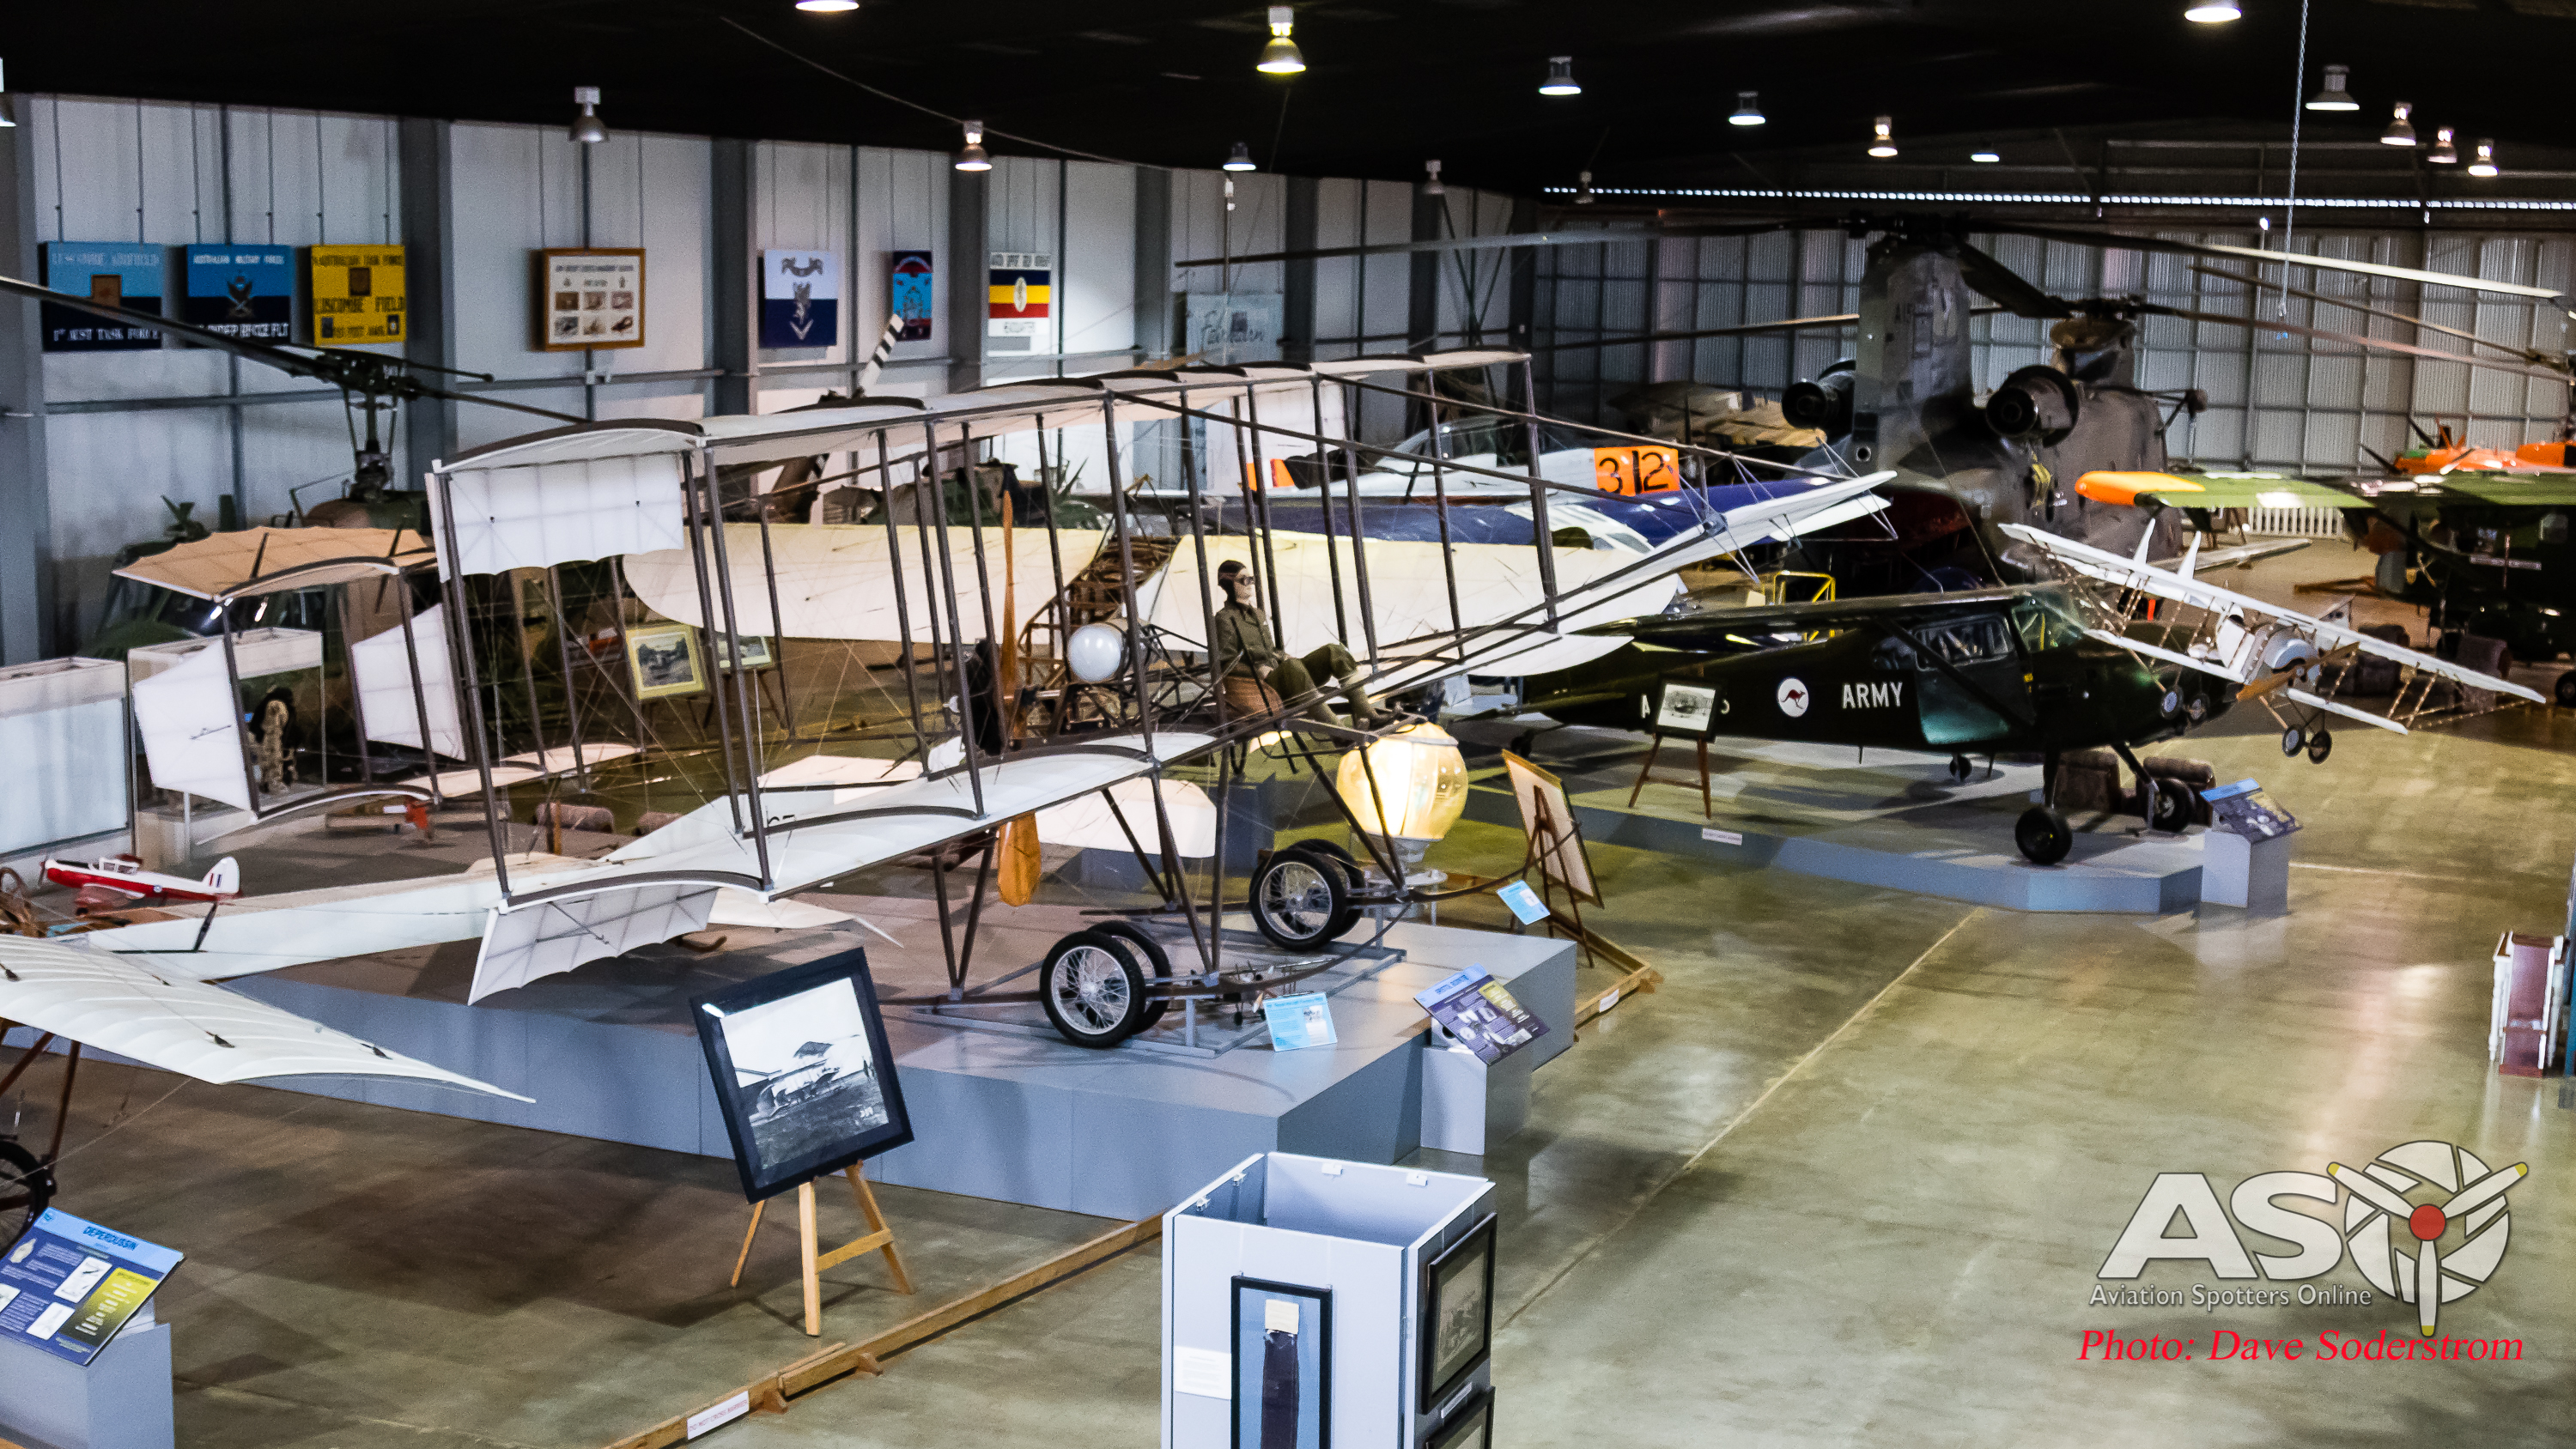 Army Museum of Aviation Oakey, telling the story of Army Aviation in Australia